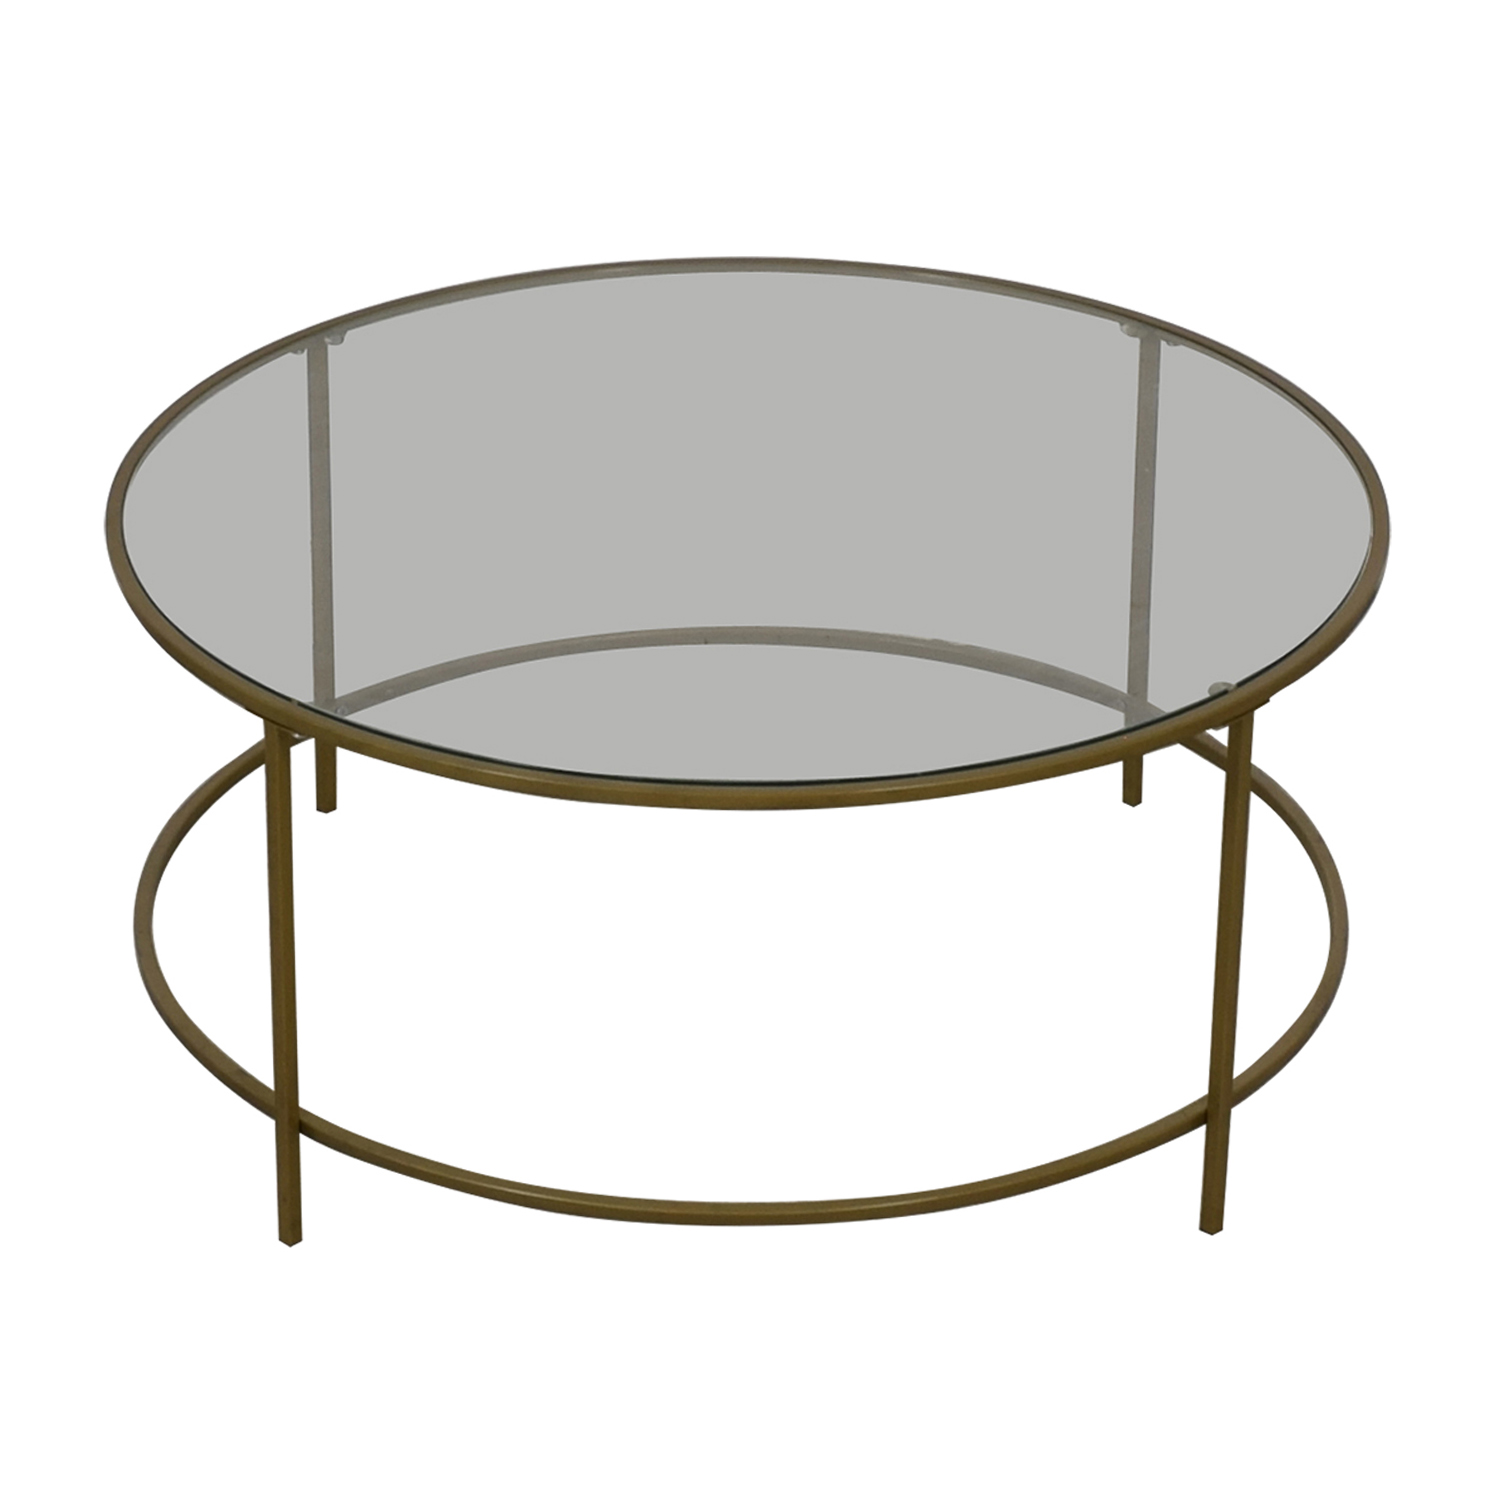 buy Wayfair Wayfair Glass and Brass Coffee Table online